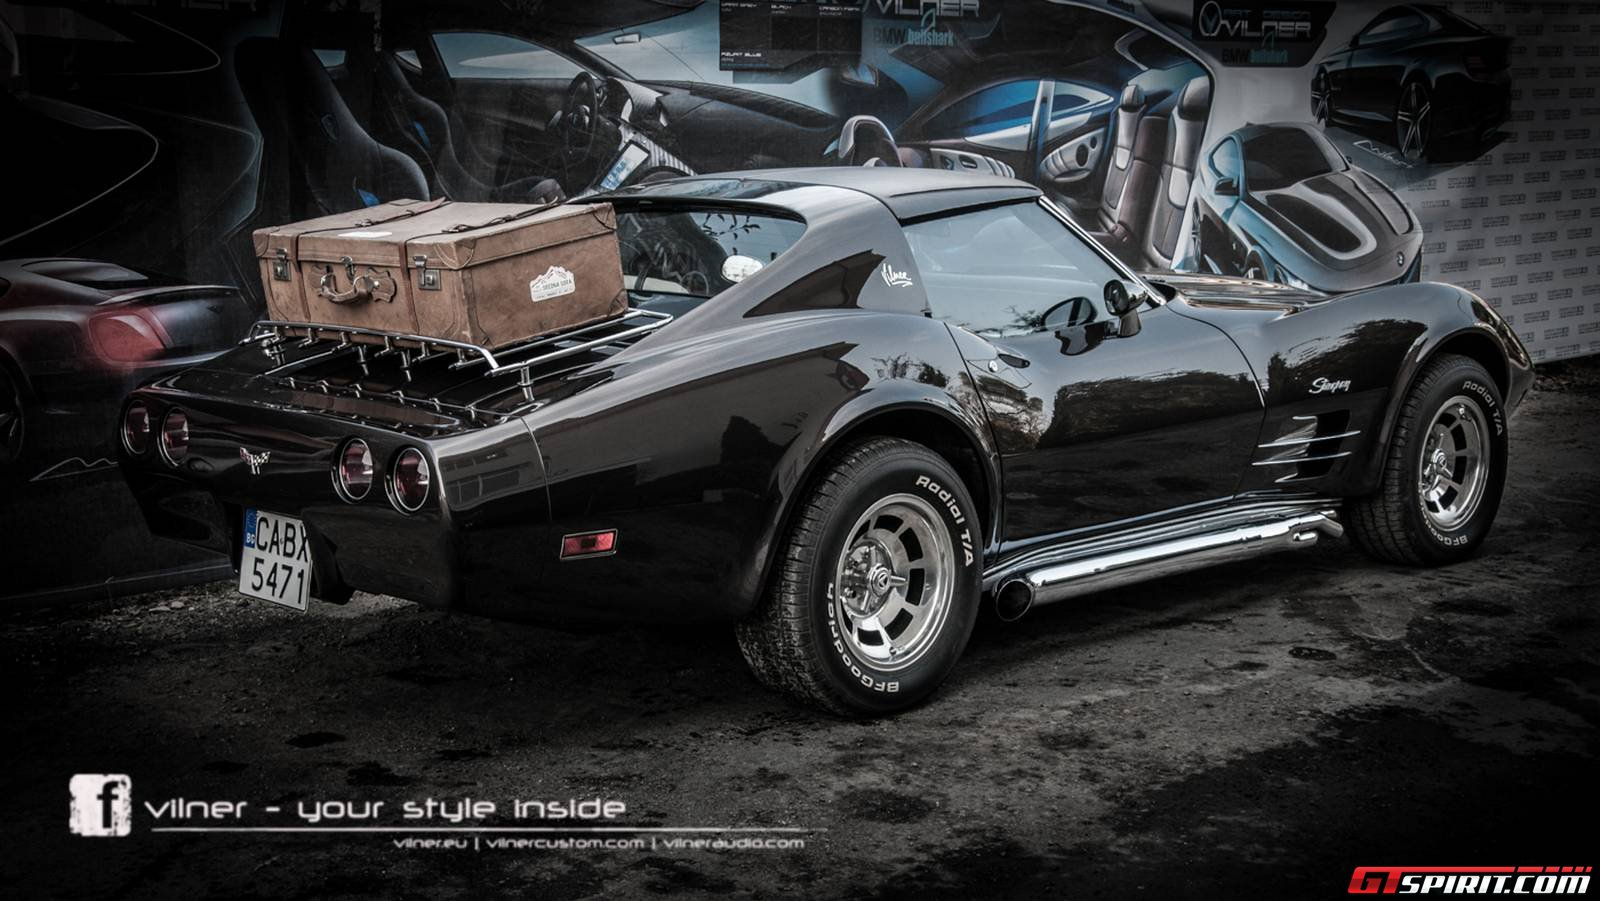 Official 1976 Chevrolet Corvette Stingray C3 By Vilner